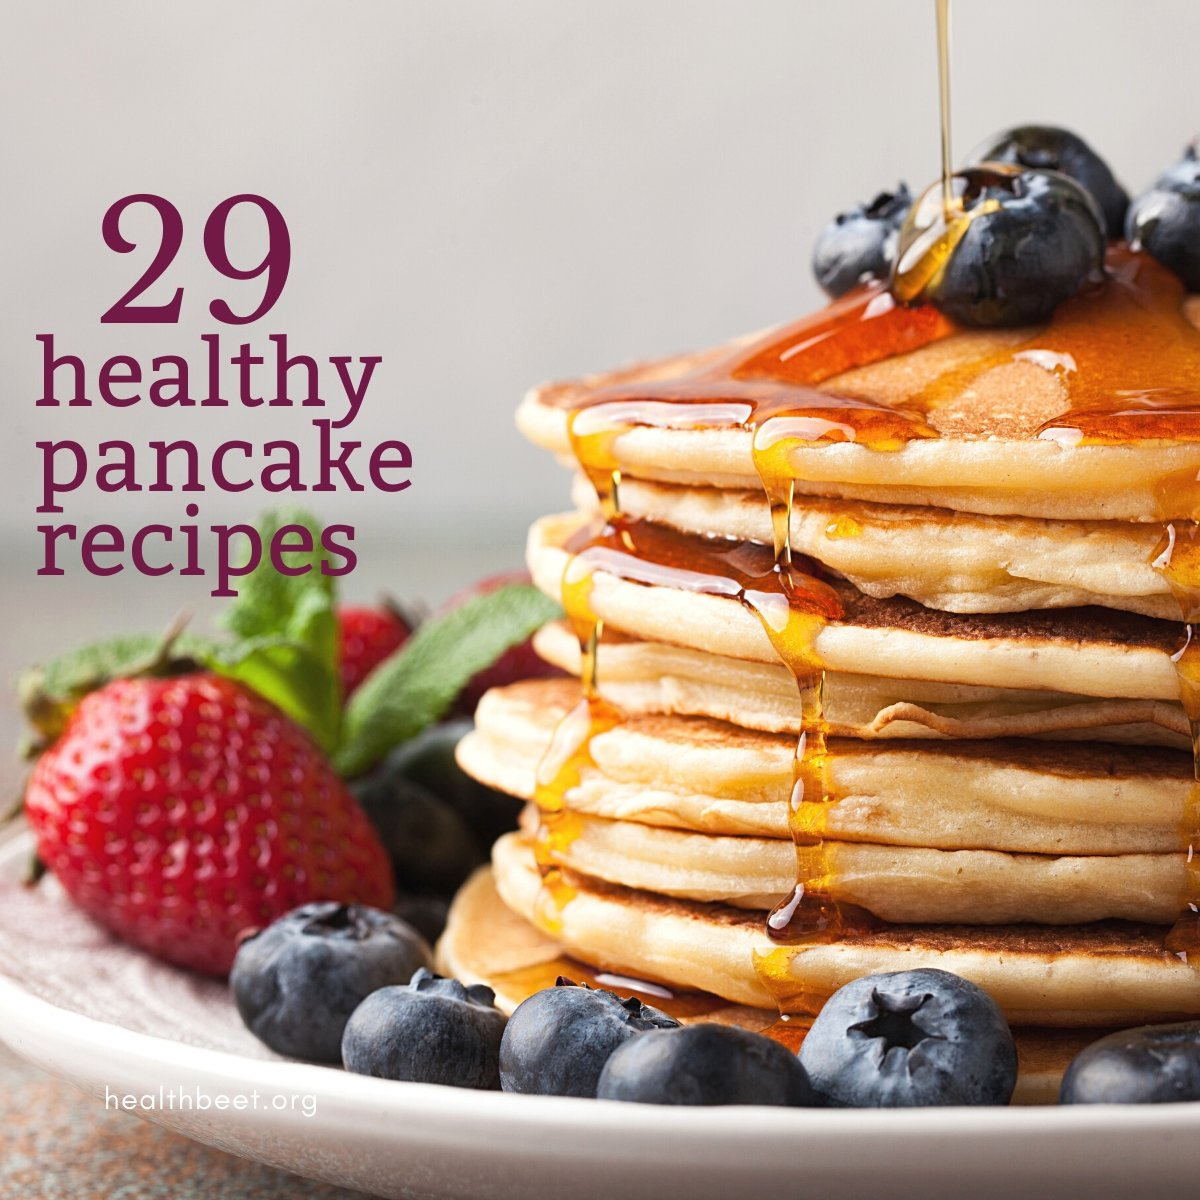 29 of the healthiest pancake recipes on the web